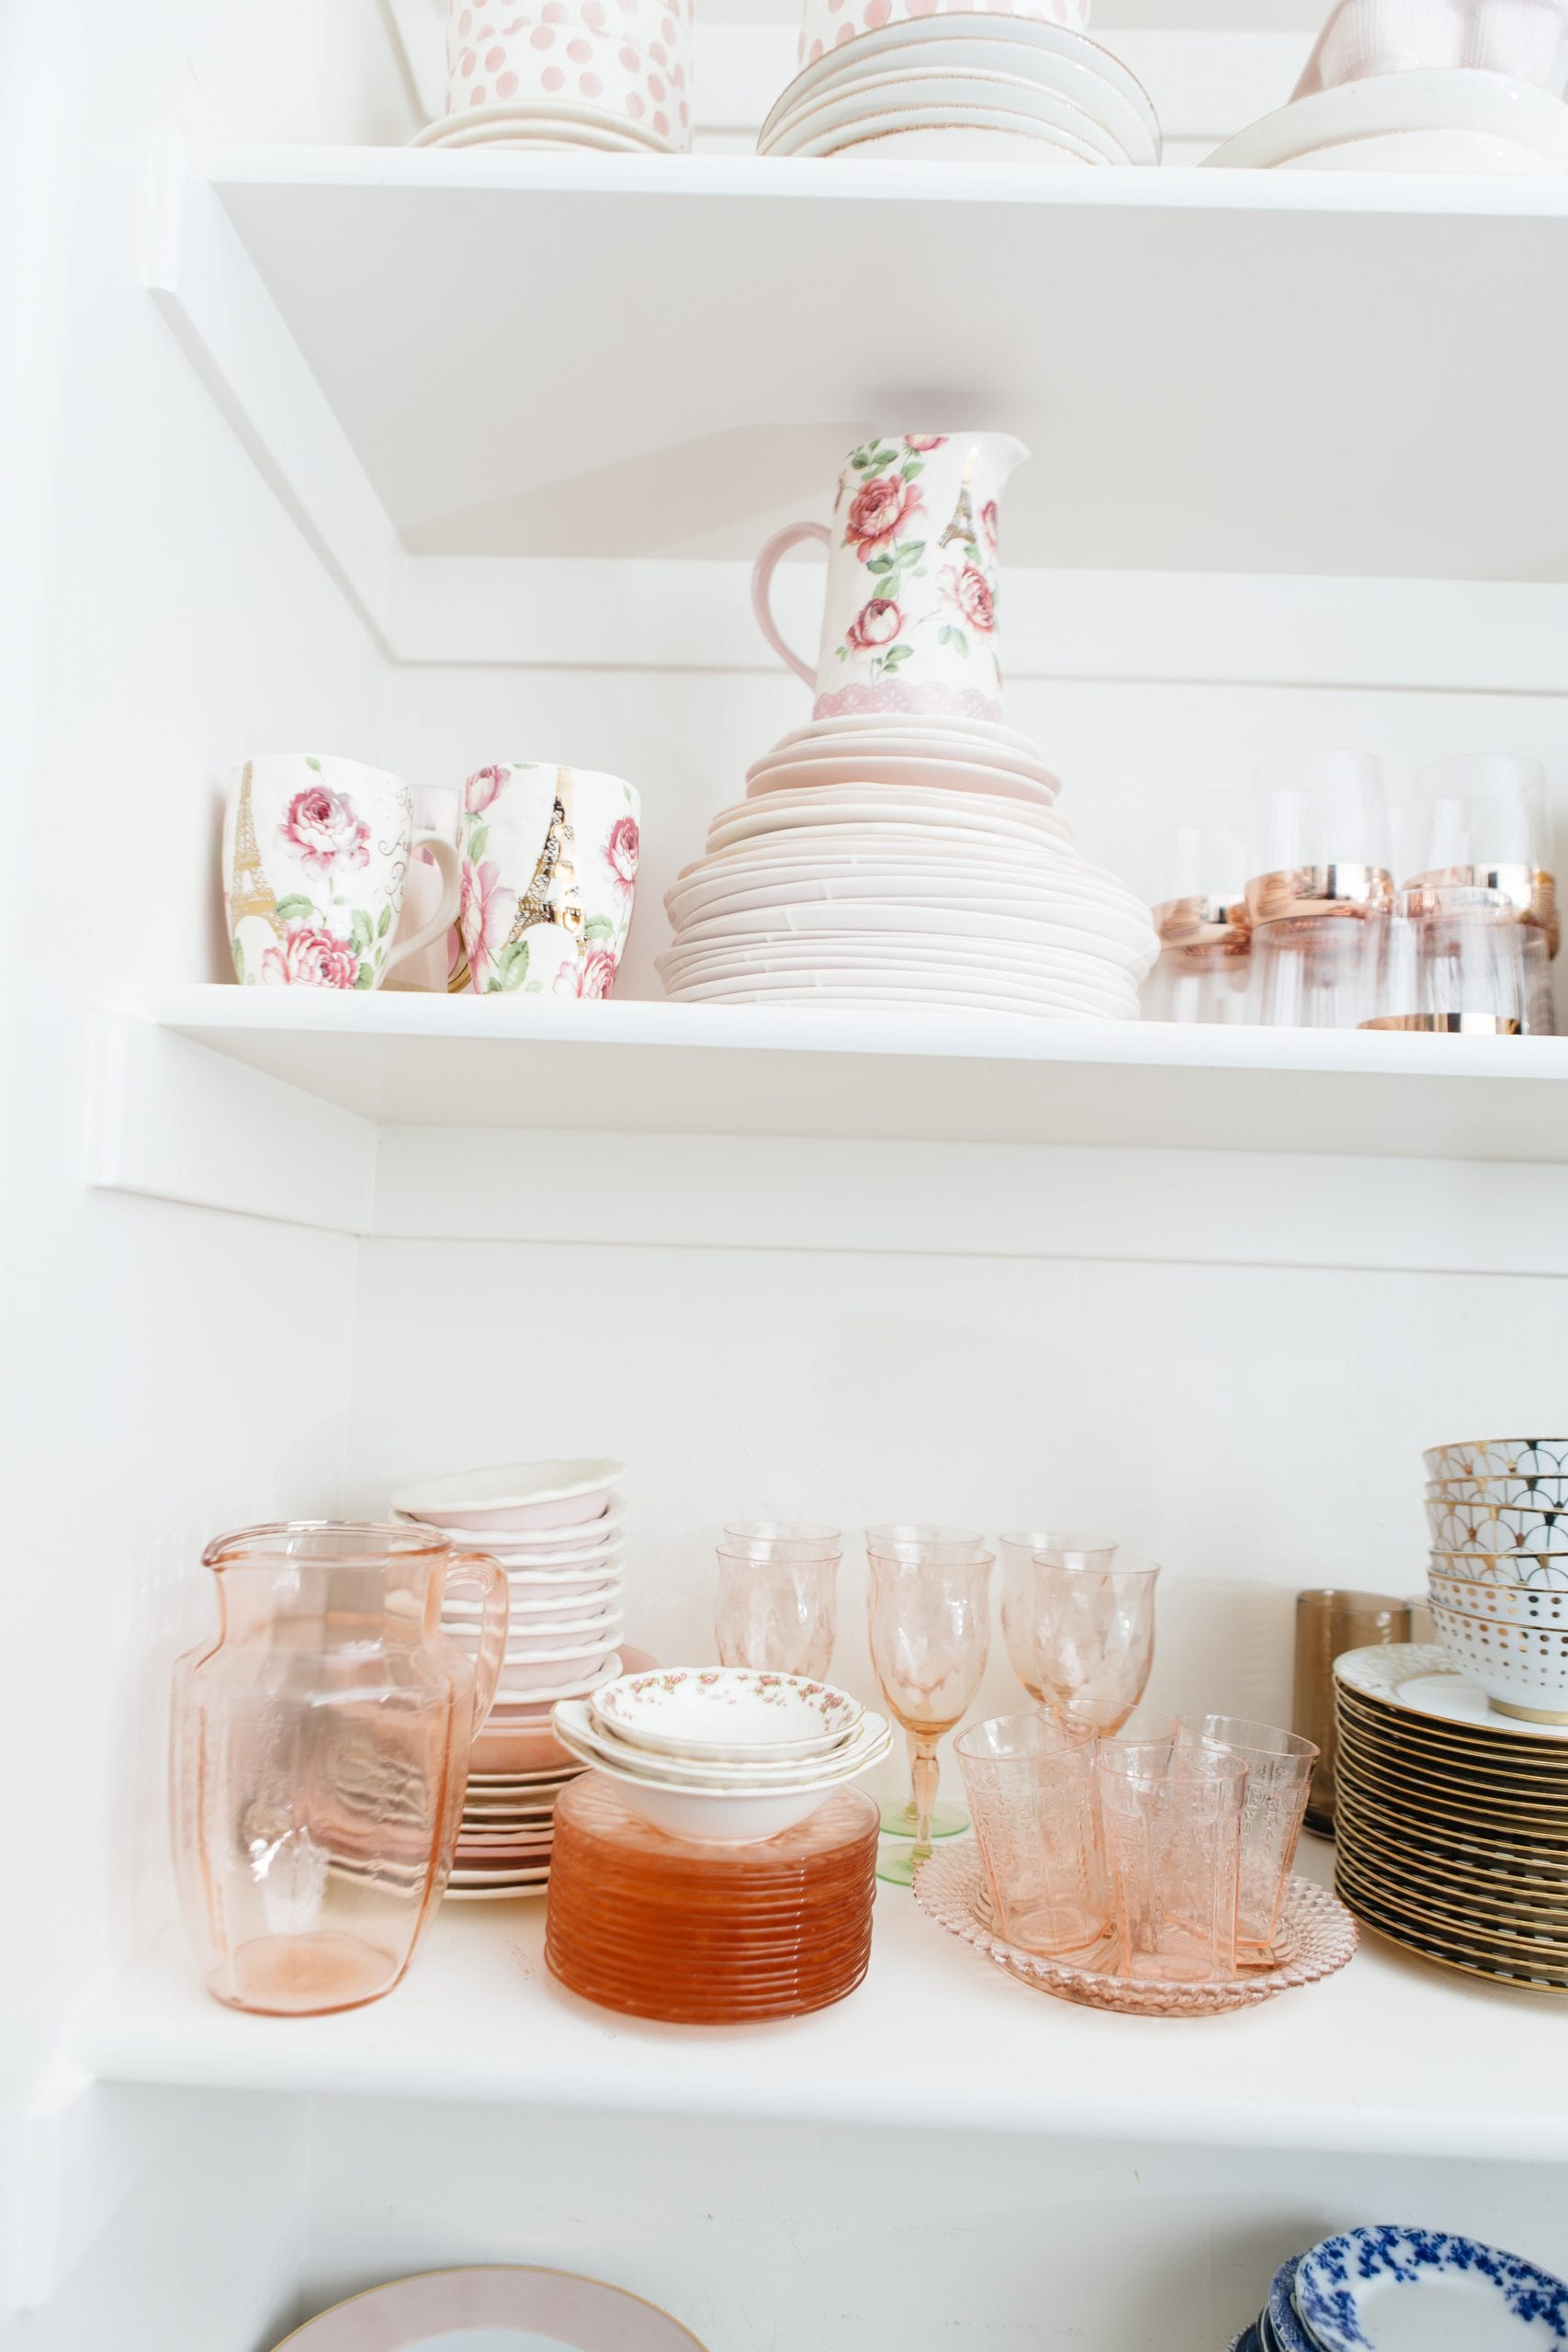 Pink Dishes depression glass